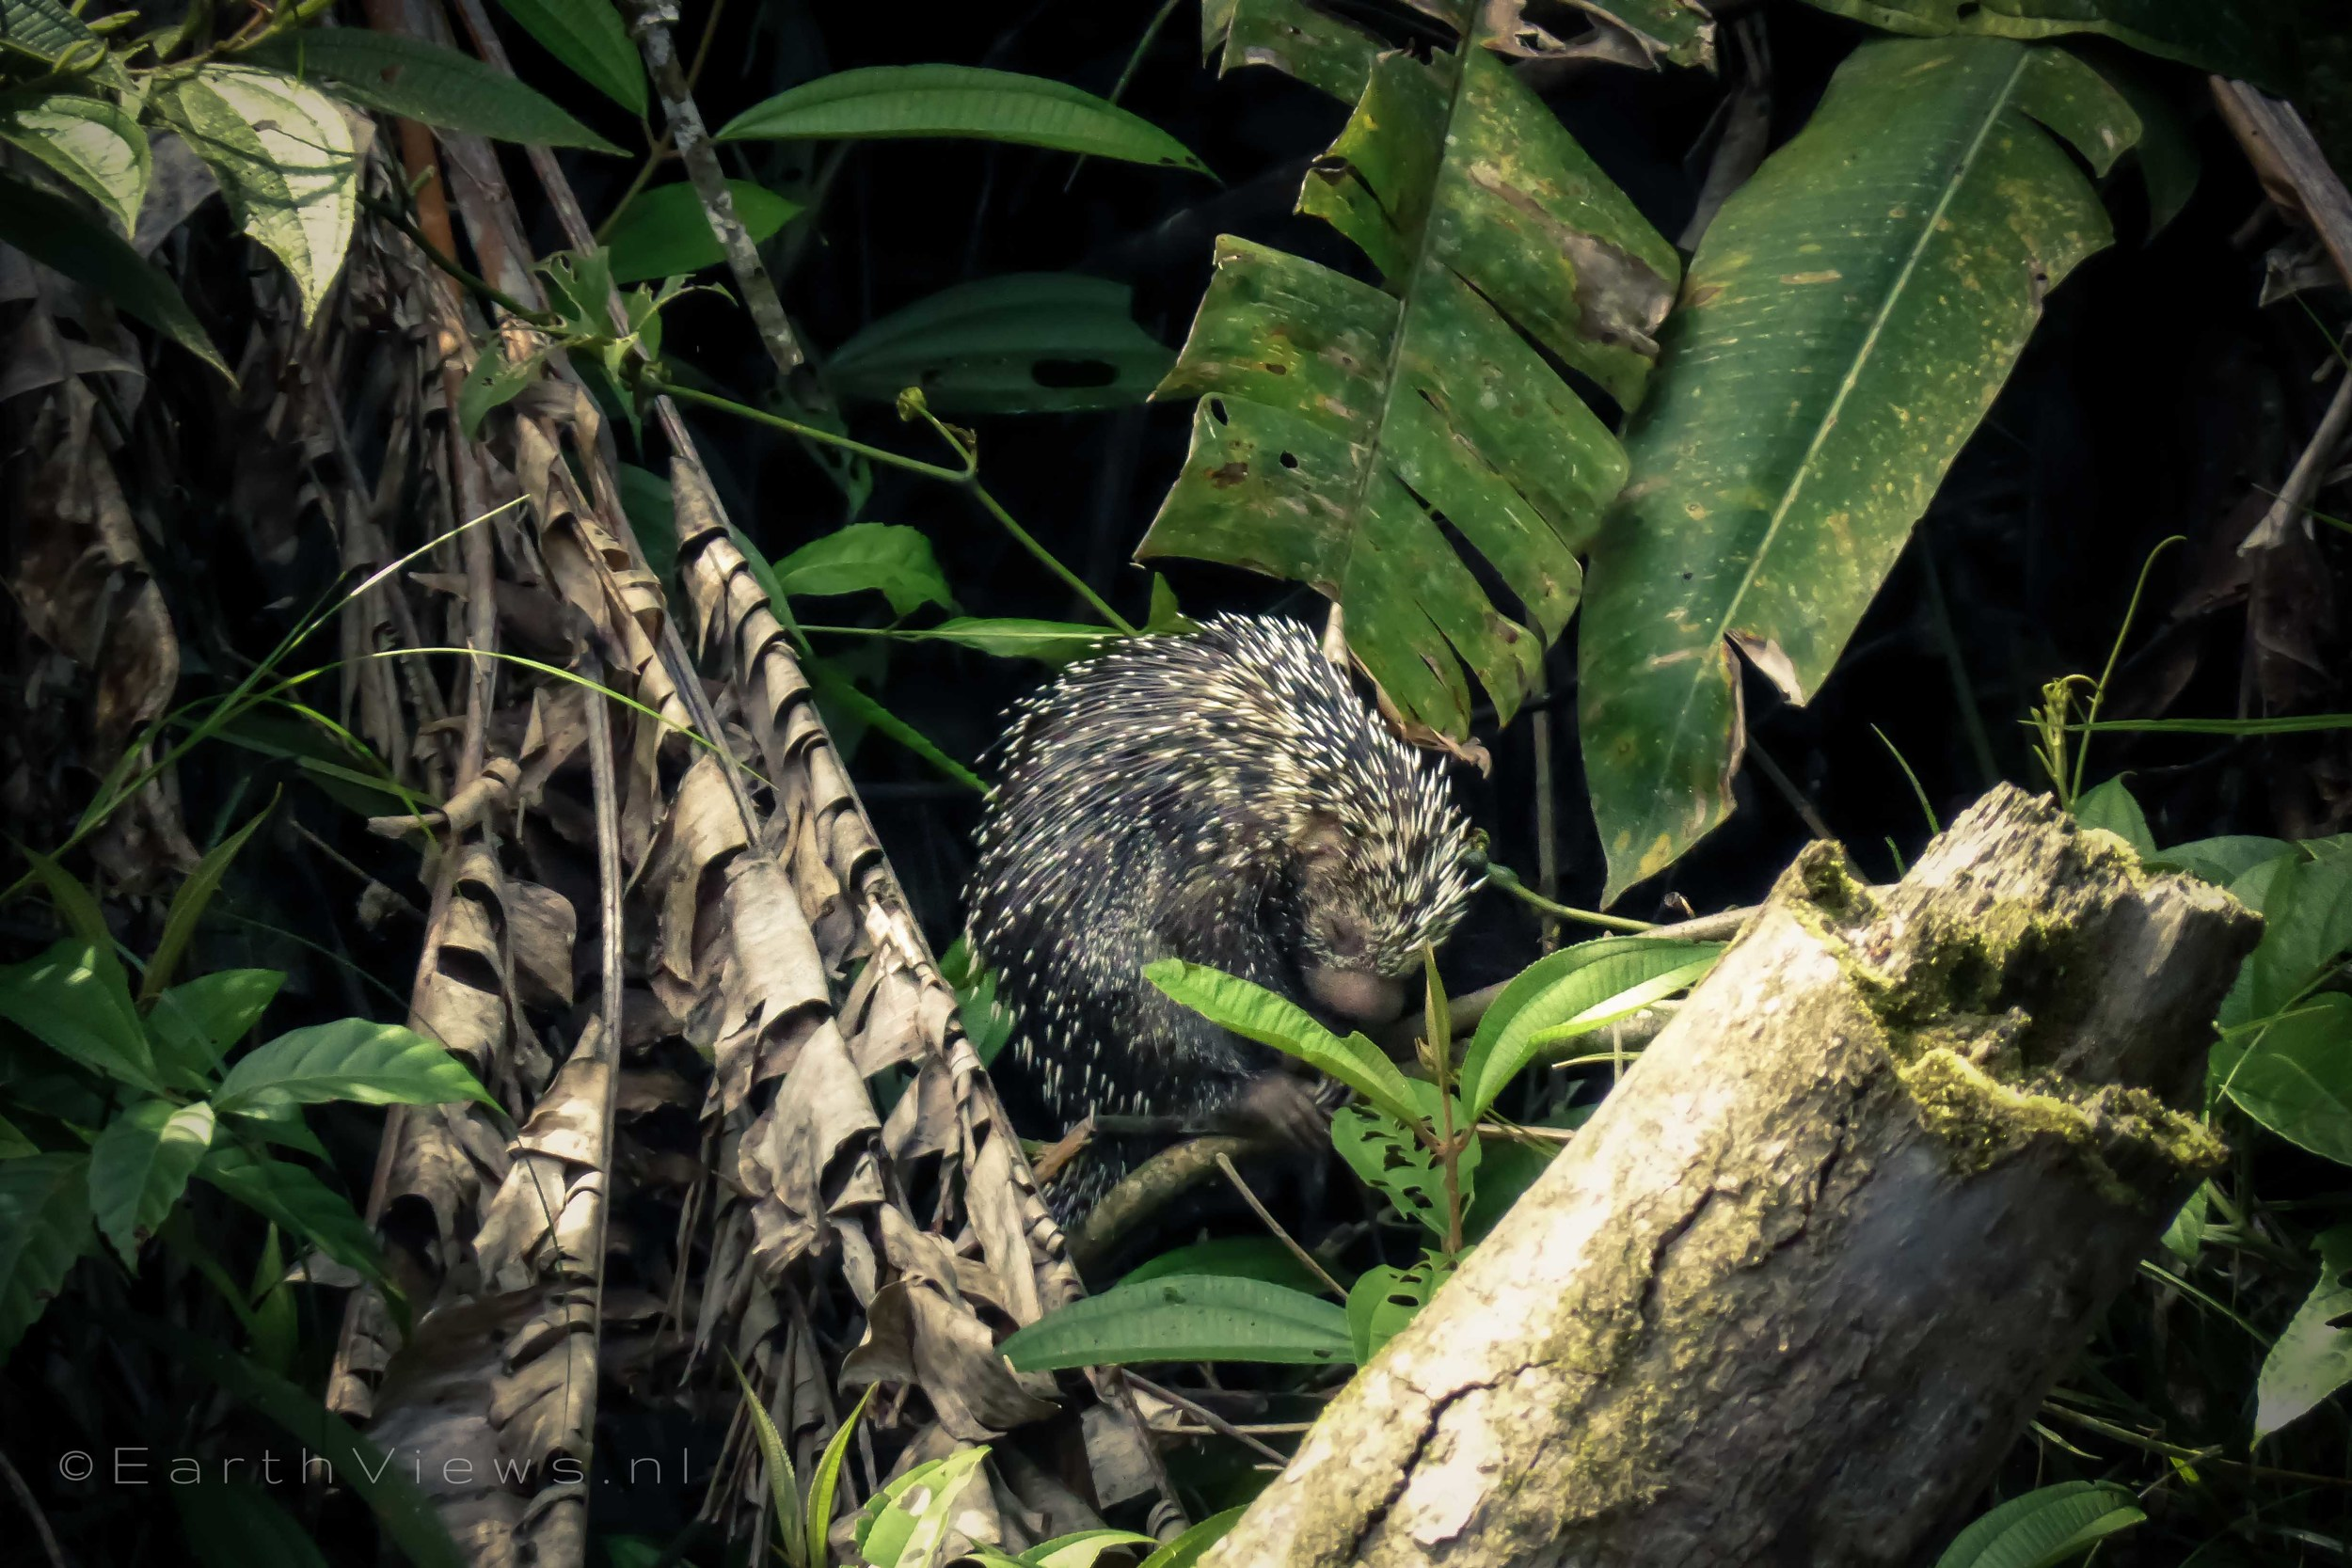 A porcupine, which was not very easy to spot.